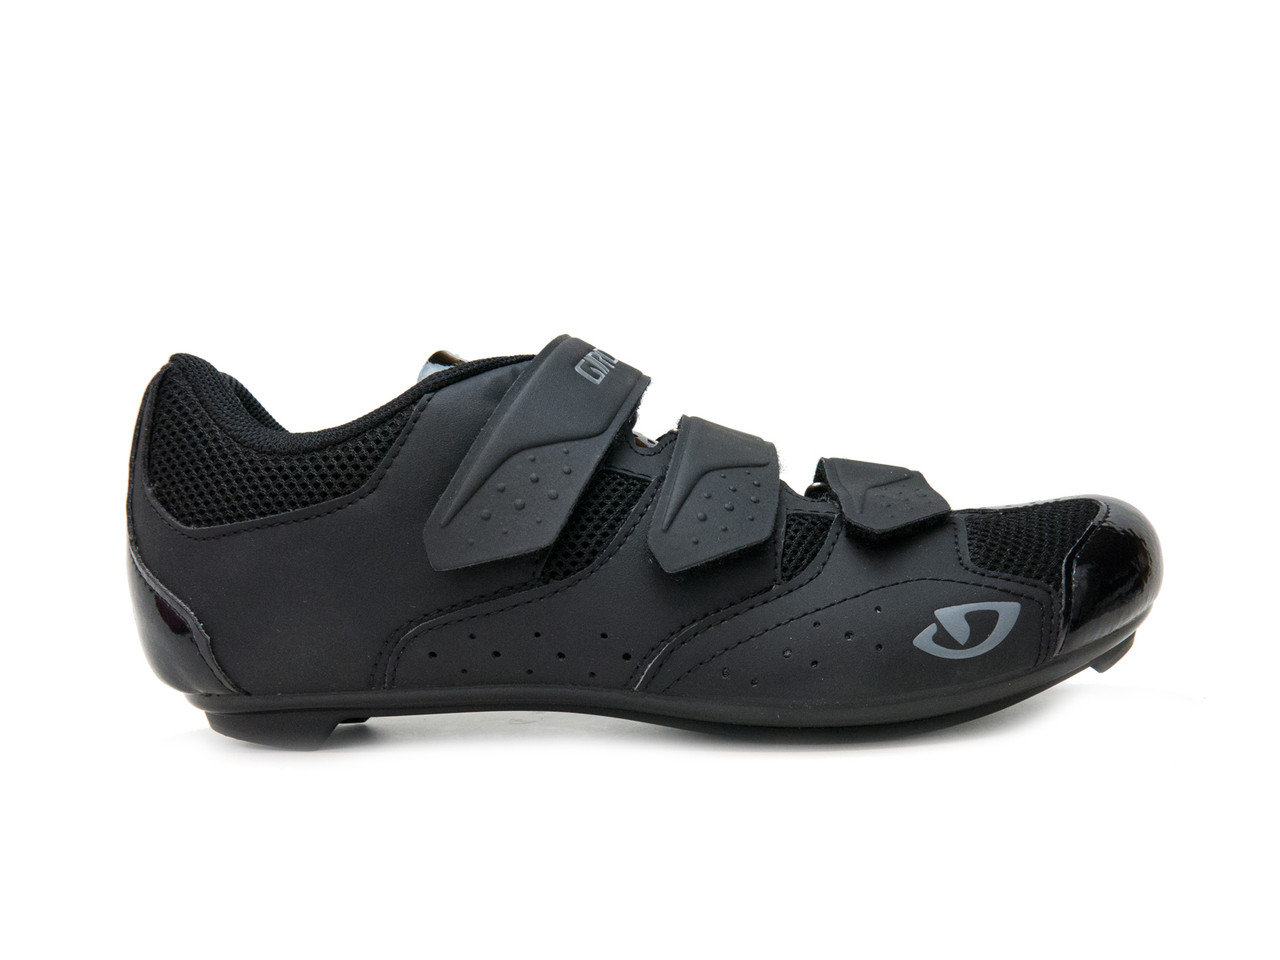 Giro Techne Men's Road Cycling Shoes - BikeShoes.com - Free 3 day shipping  on orders over $50